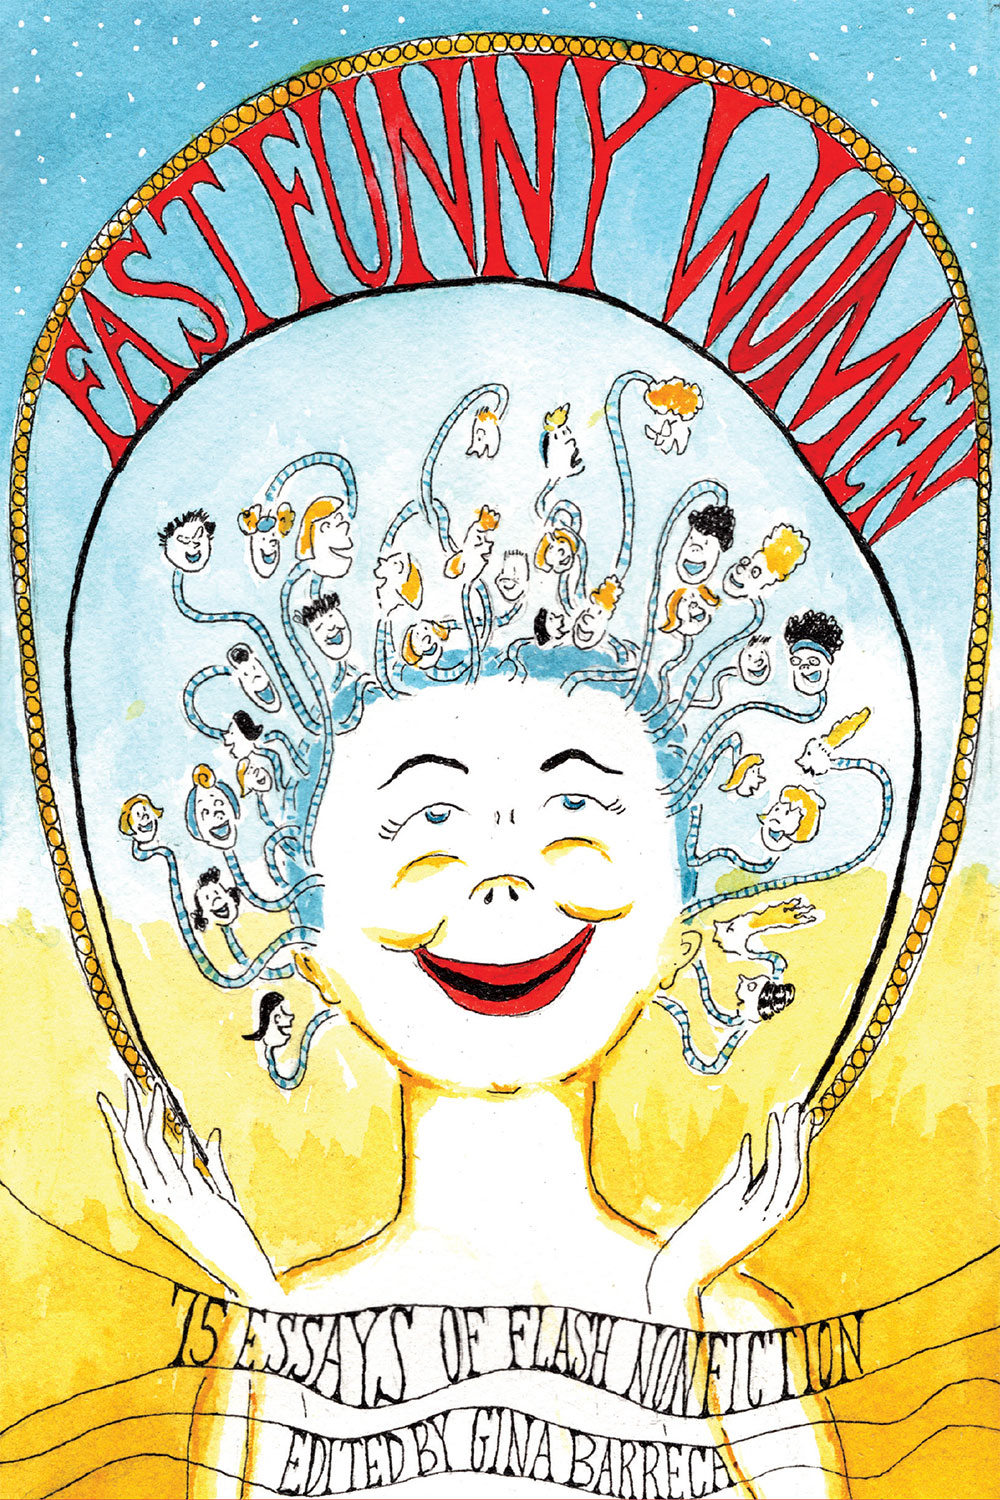 Book Cover Art: Fast Funny Women, 15 Essays of Flash NonFiction, Edited by Gina Barreca